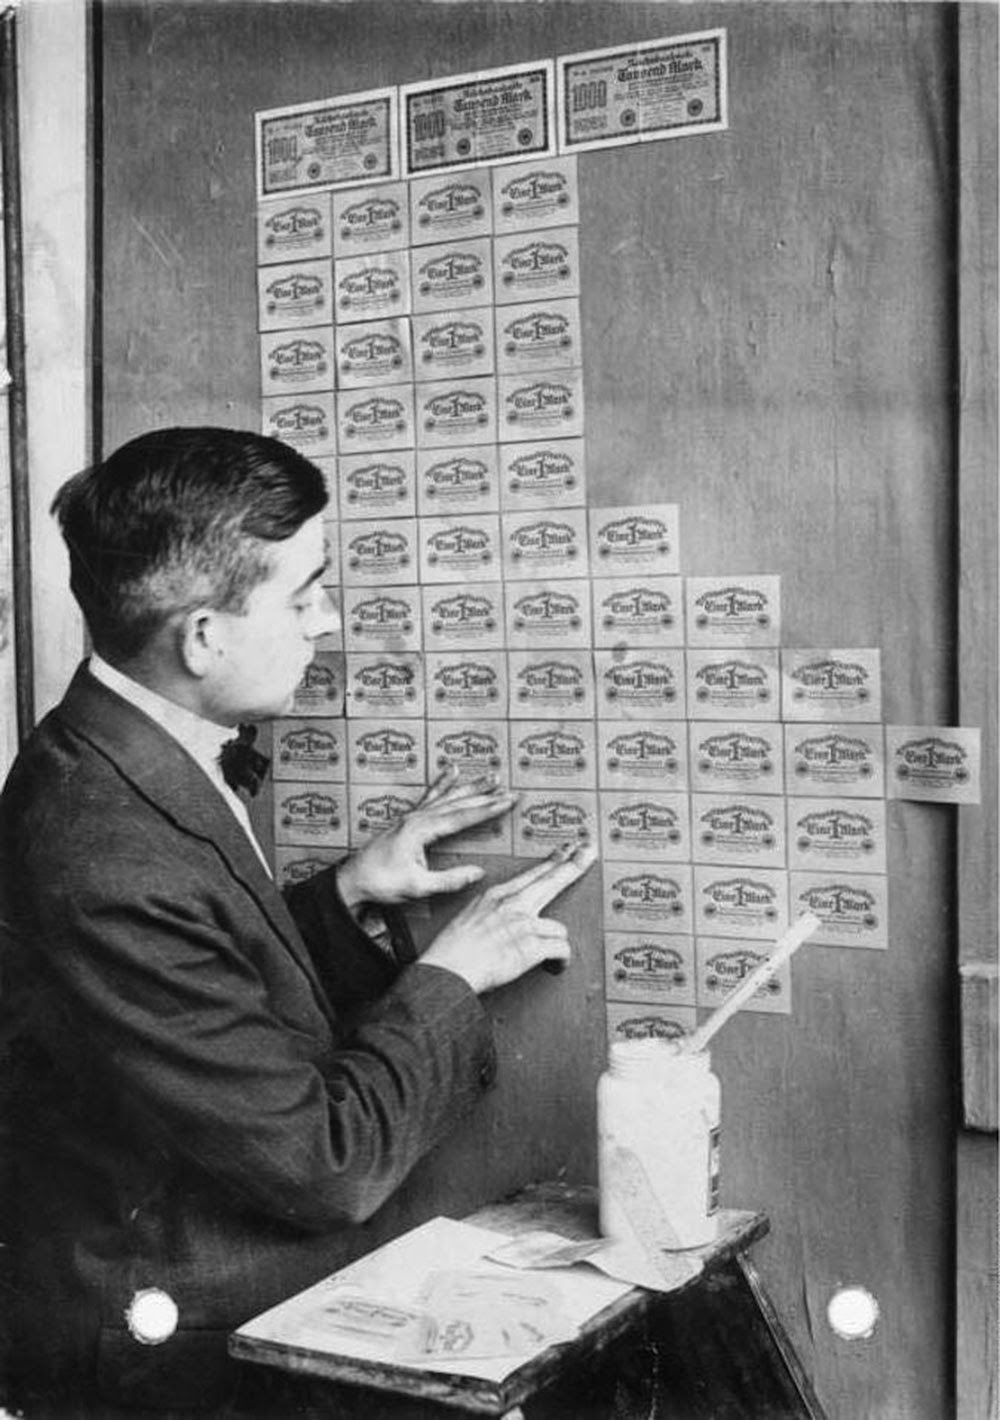 Using banknotes as wallpaper during hyperinflation, Germany, 1923